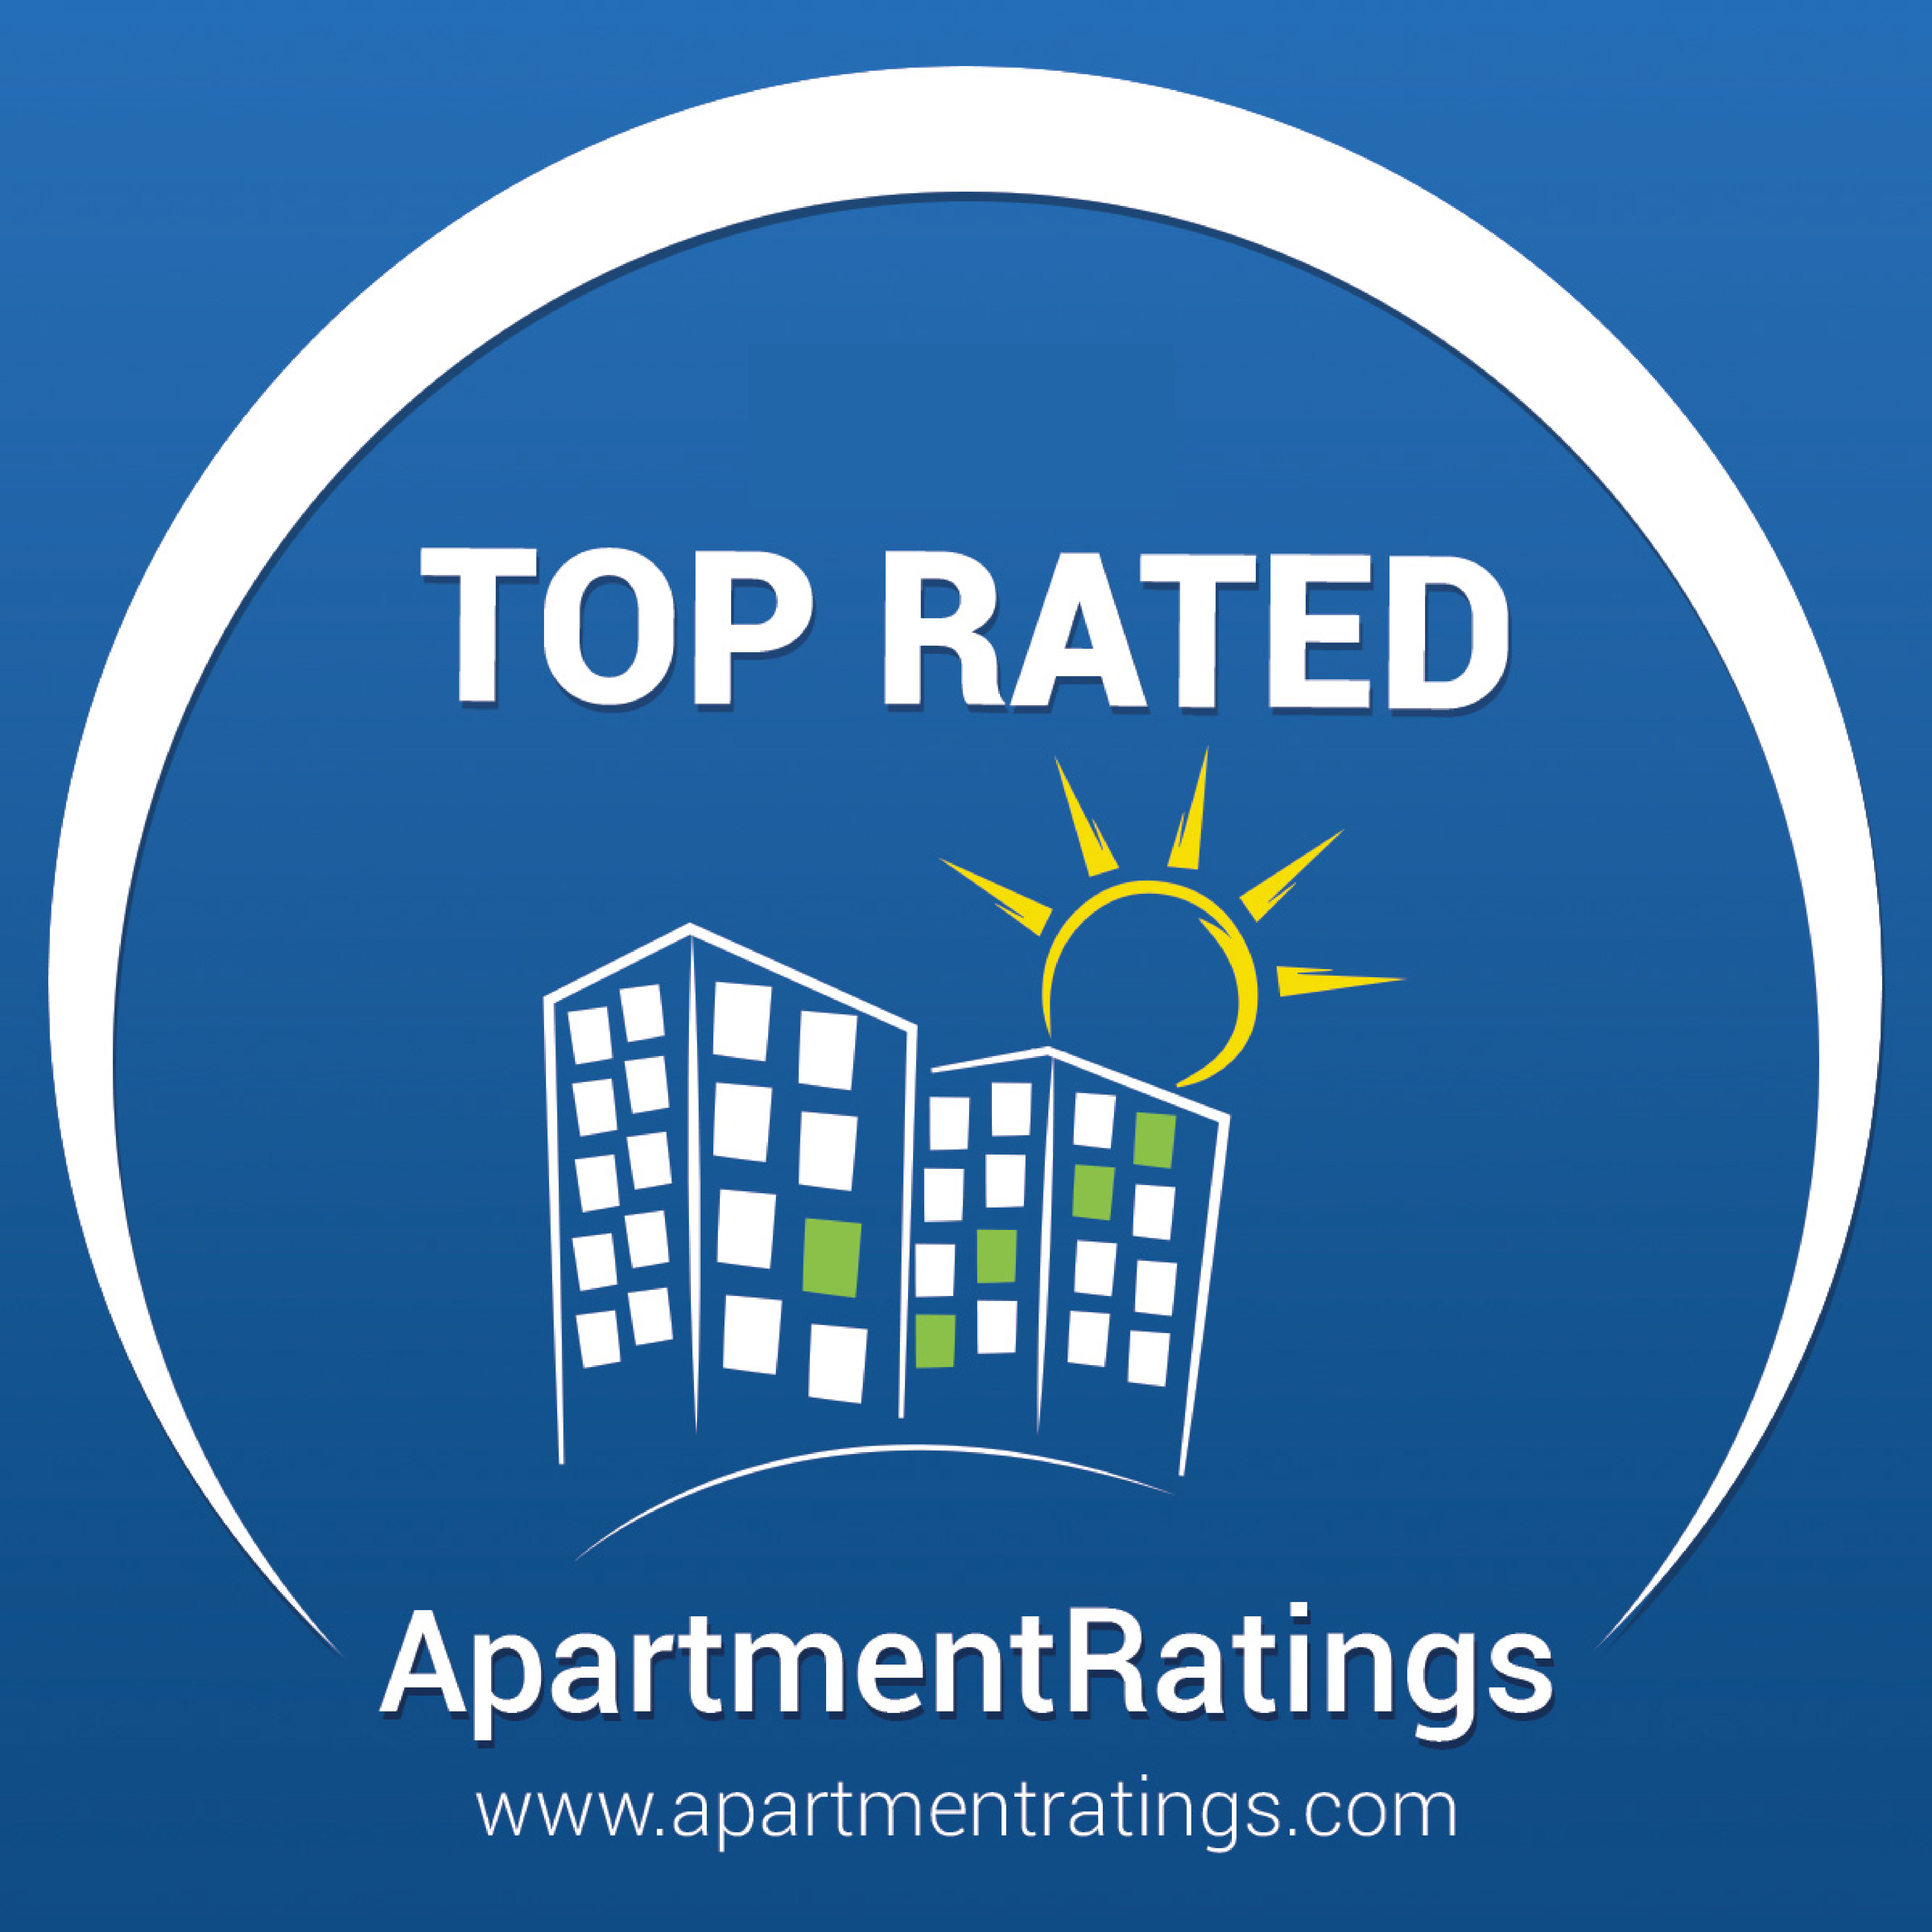 top rated apartmentratings.com